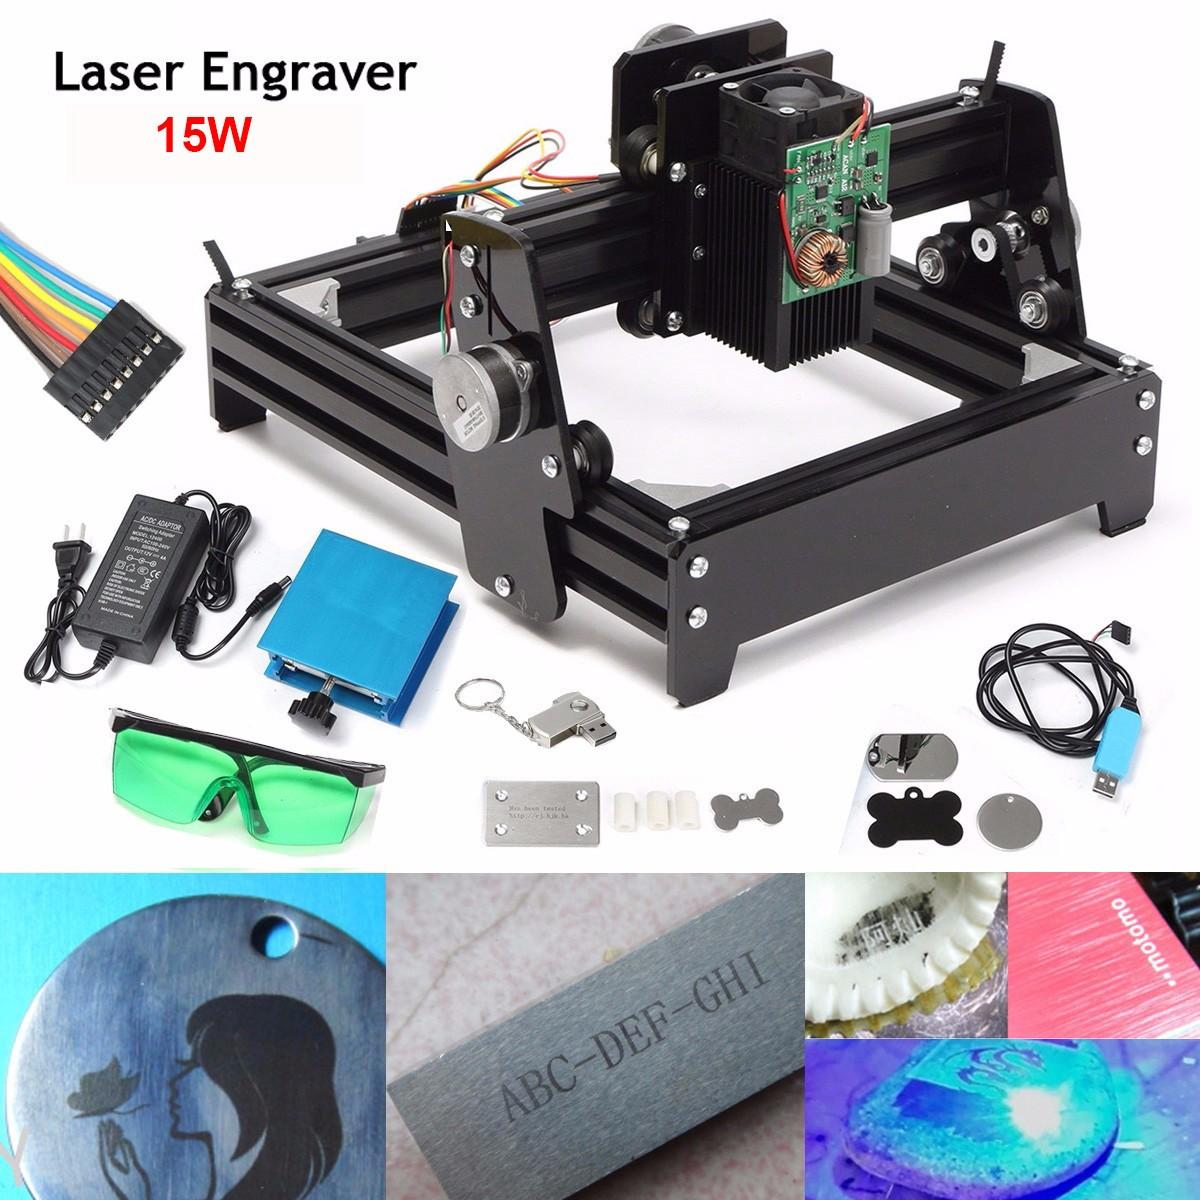 New 15W Laser AS-5 USB Desktop 15000mW CNC Laser Engraver DIY Marking Machine For Metal Stone Wood Engraving Area 14 x 20cm 10w 15w diy cnc laser marking machine work area 14 20cm for stainless steel wood aluminum etc metal material